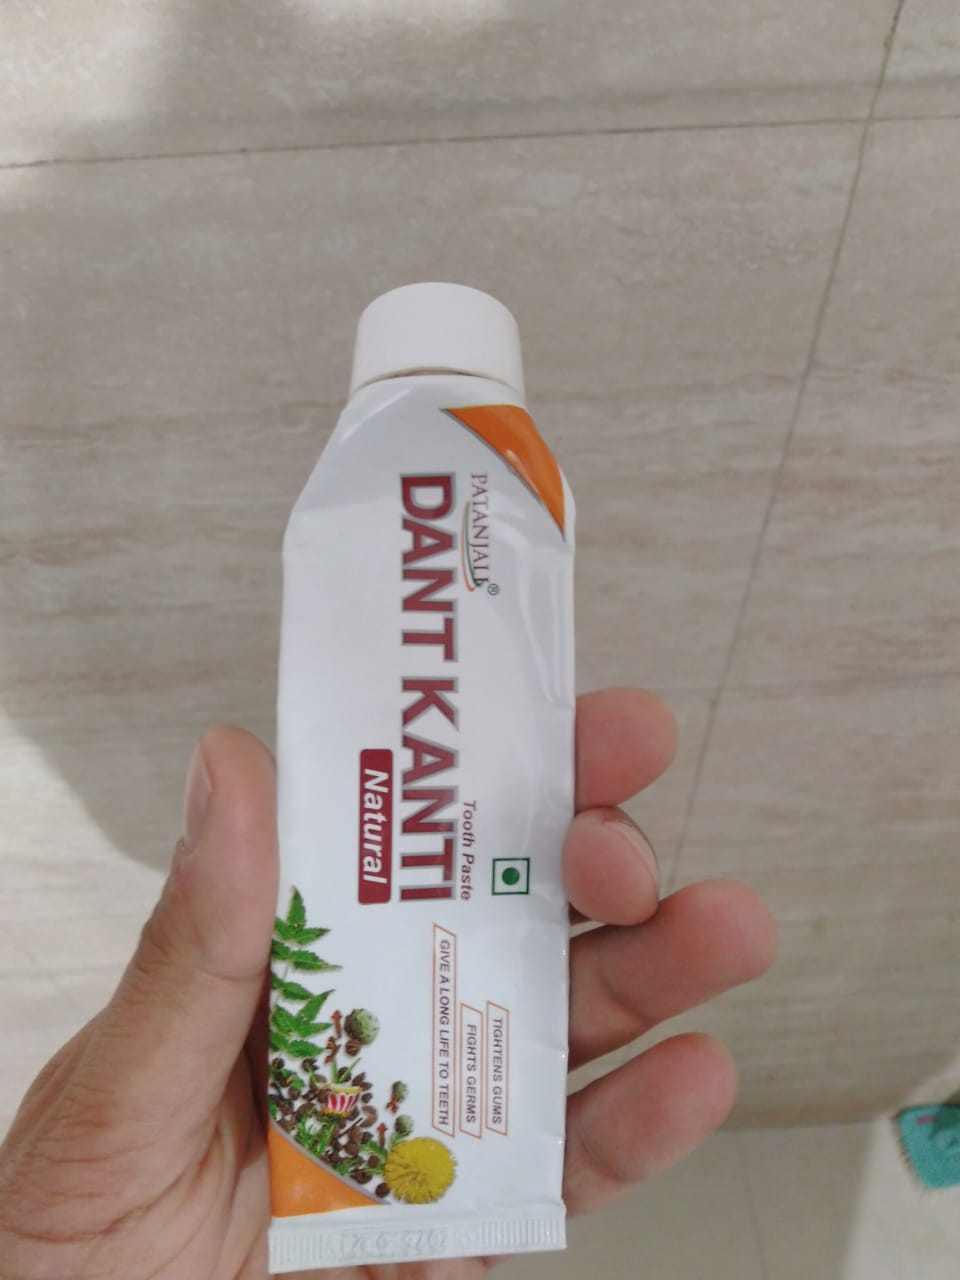 Patanjali Dant Kanti Dental Cream (Regular) 100gm -Patanjali Dant Kanti Dental Cream-By bhumikad